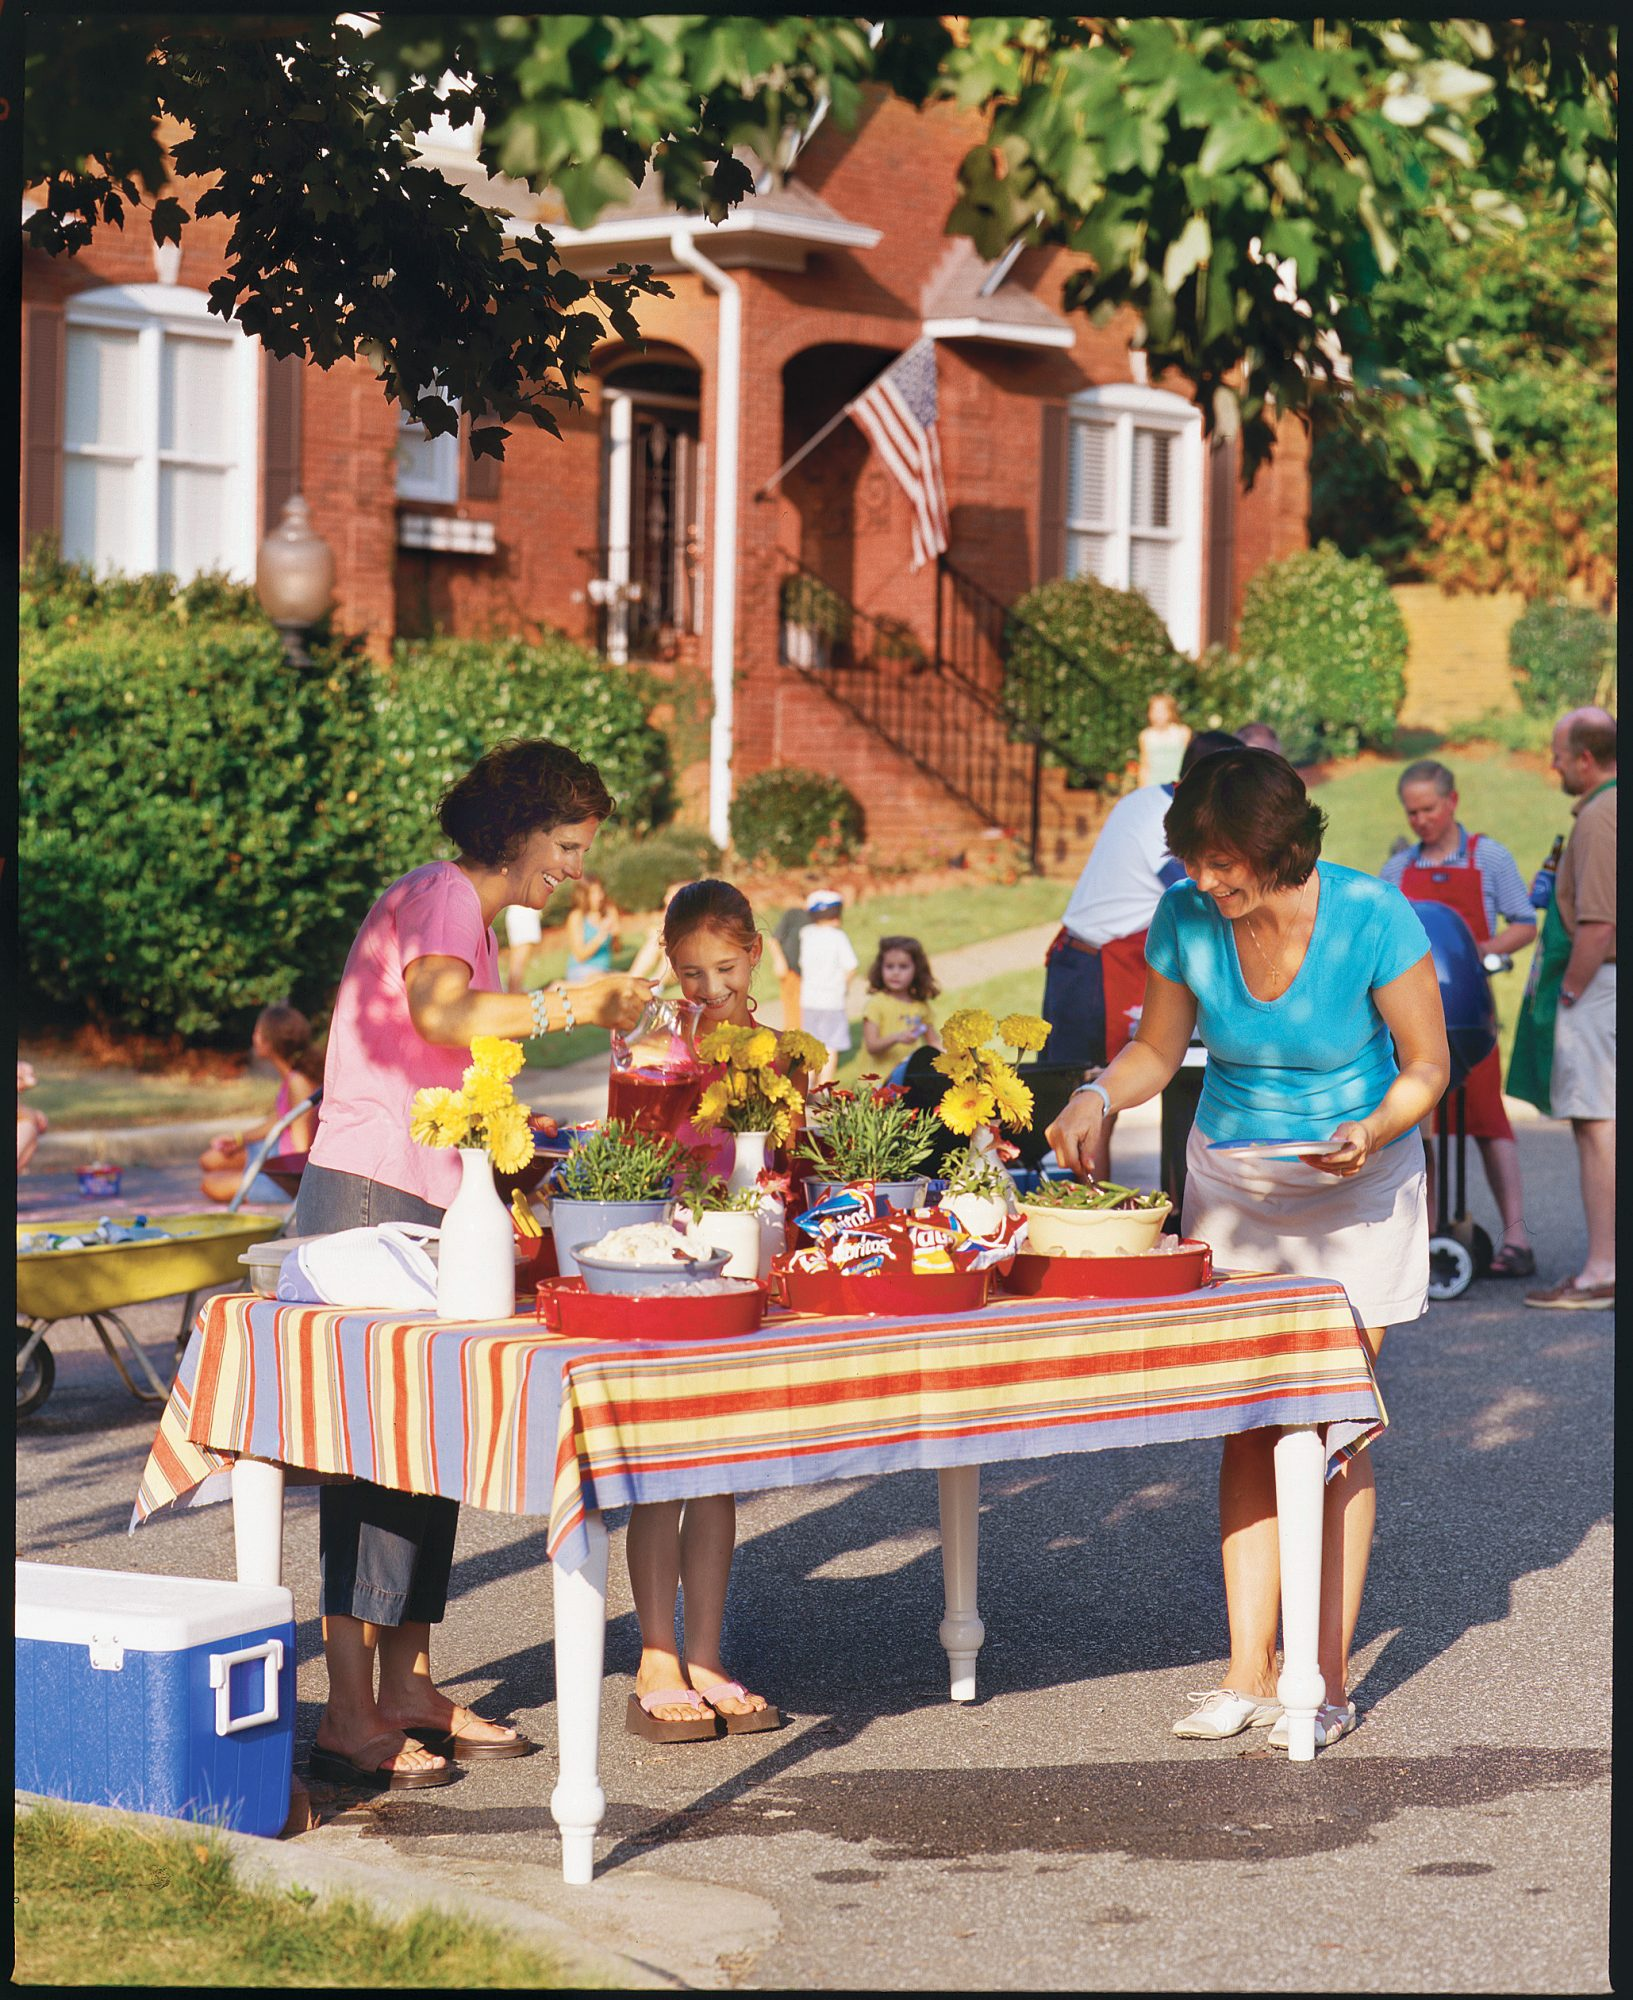 Summer Living: Host a Block Party